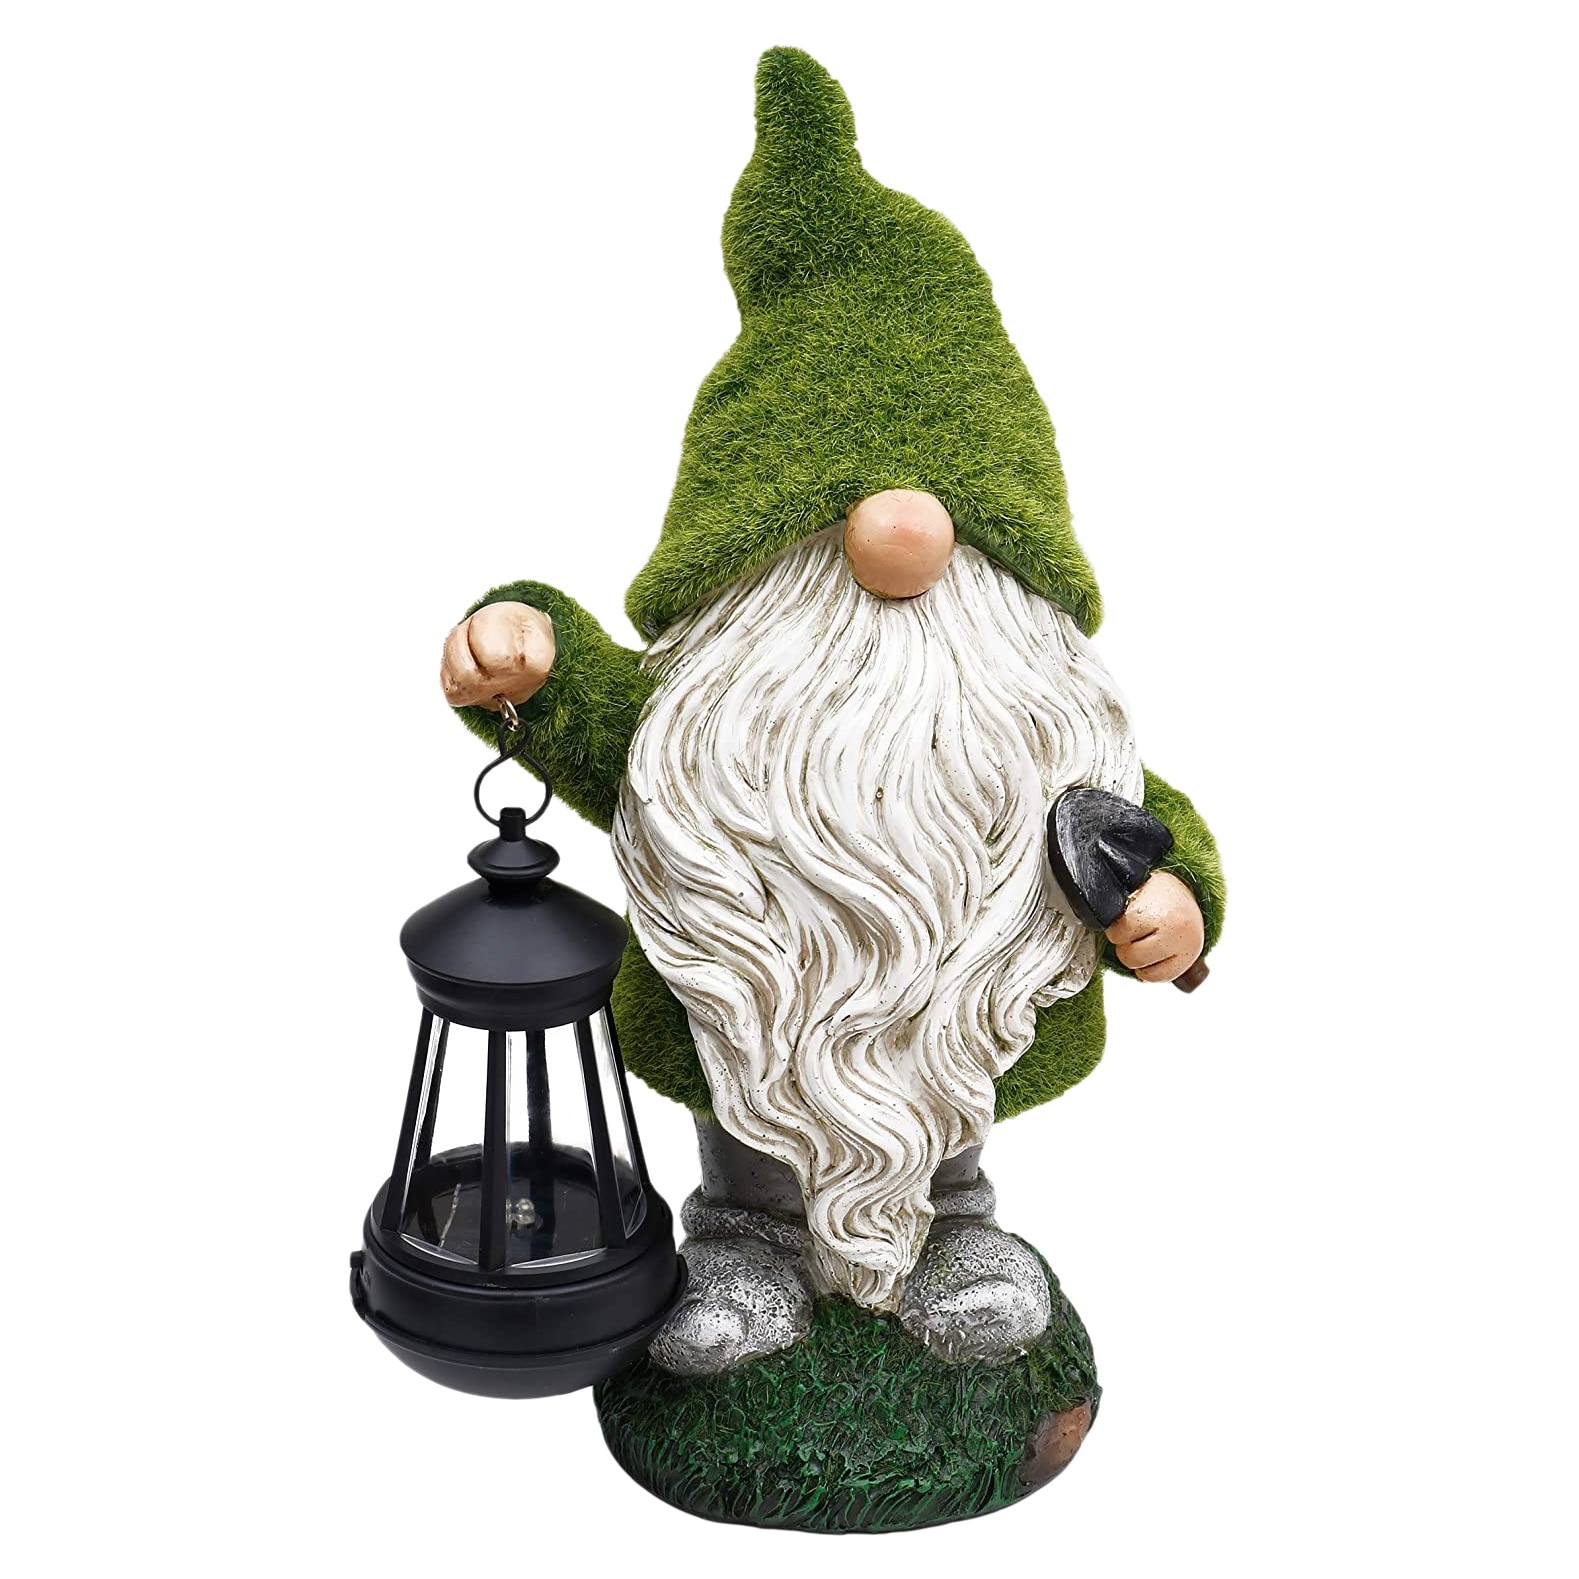 Garden Gnome Statue Holding Lantern, Large Outdoor Gnome with Solar Lights, Funny Garden Figurines for Outdoor Patio